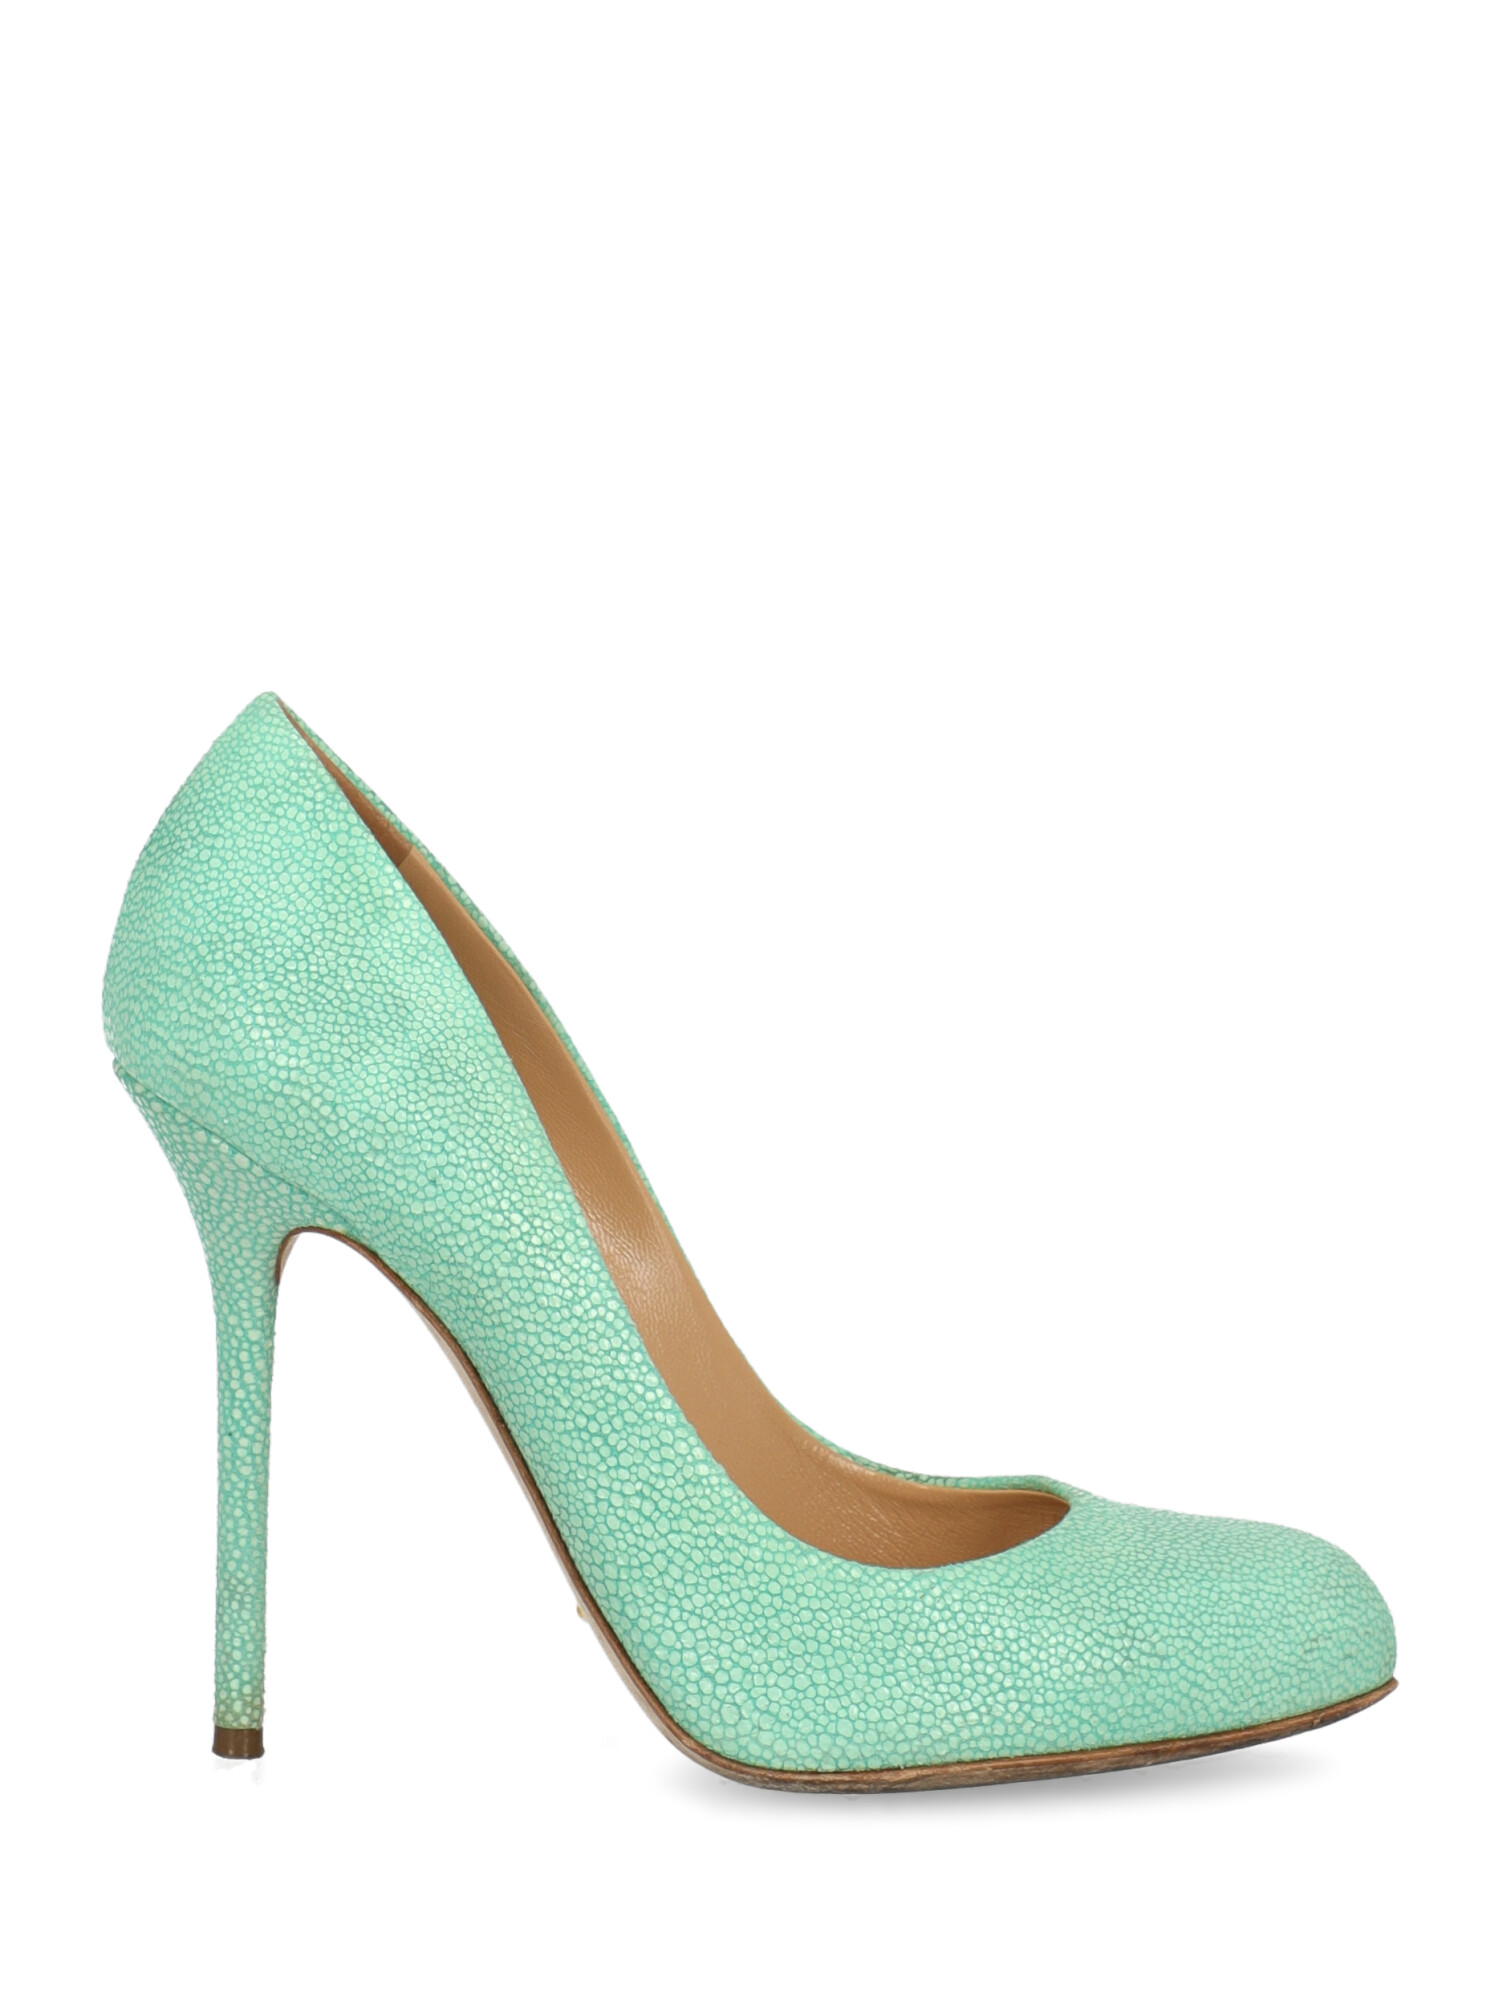 Pre-owned Sergio Rossi Shoe In Green